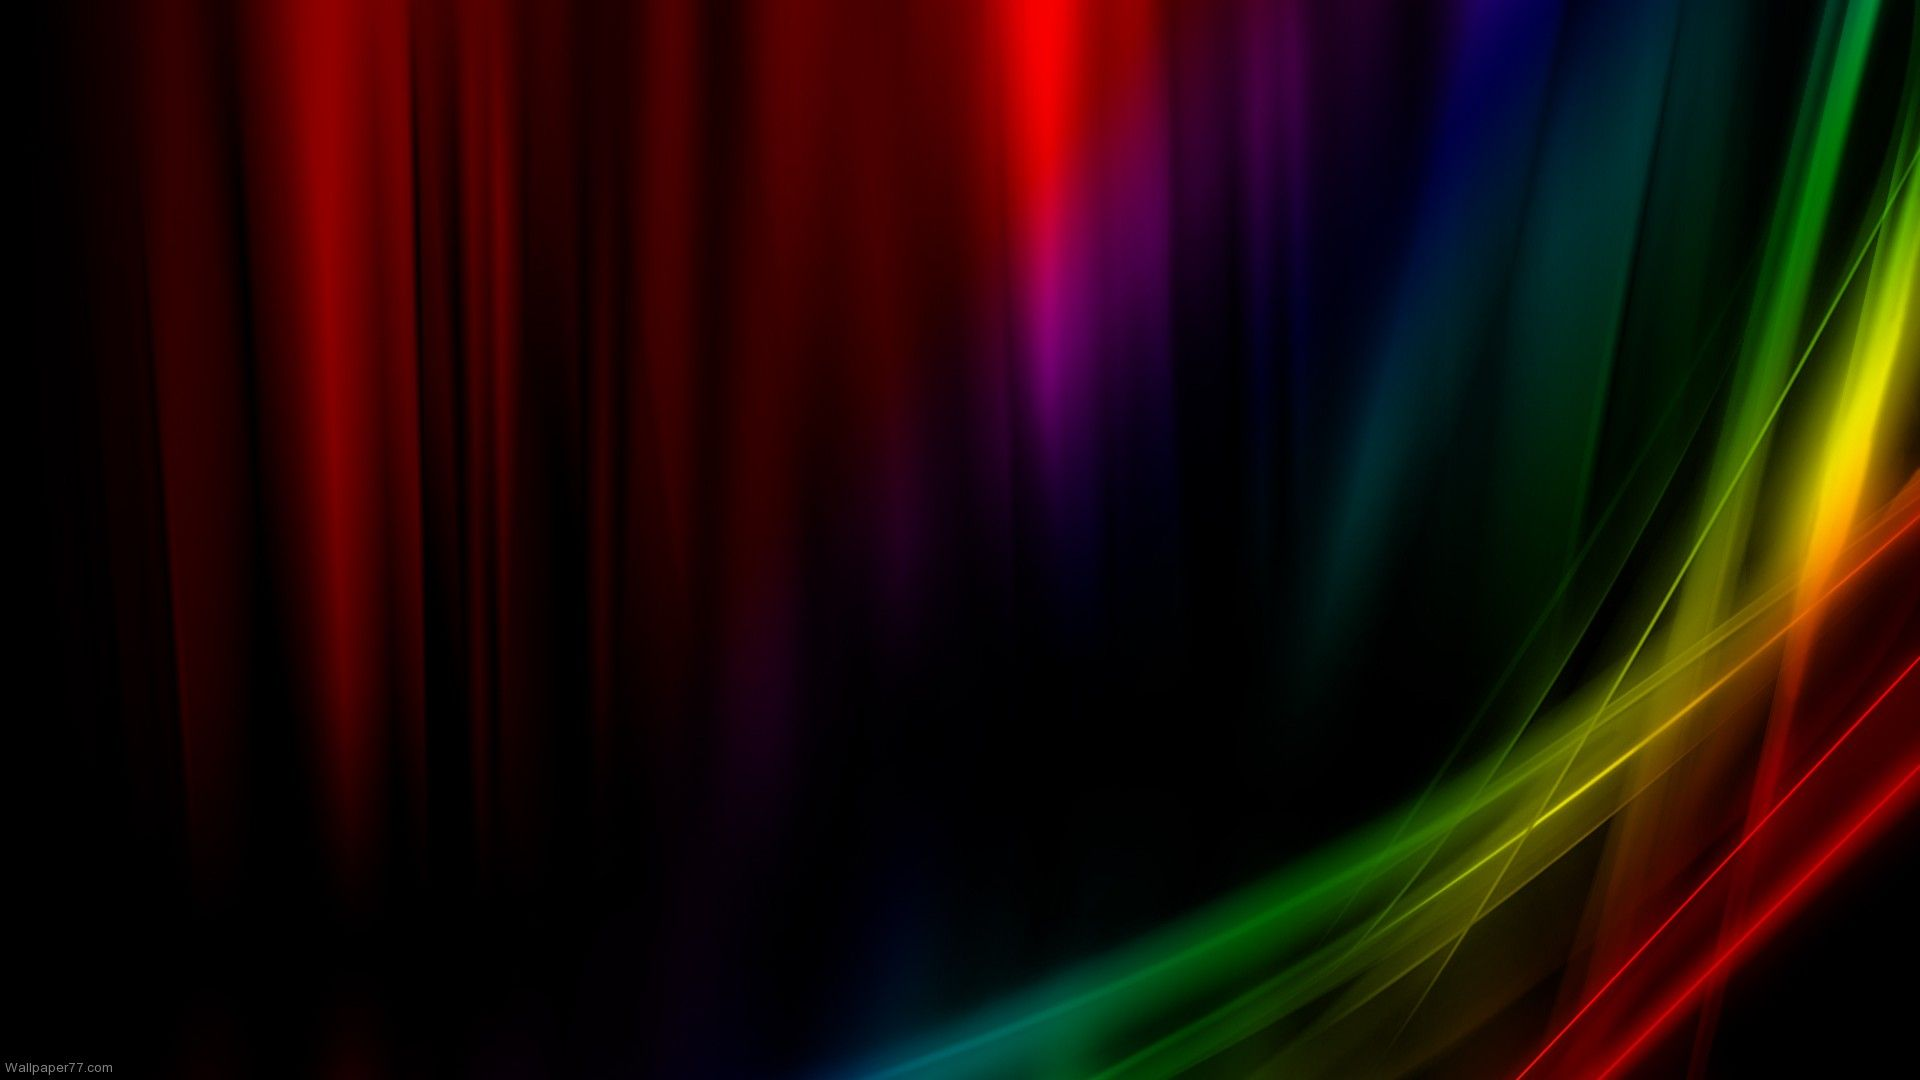 Vista Color Aura 1920x1080 Pixels Wallpapers Tagged Computer Wallpapers Vista Wallpapers Windows Wallpapers